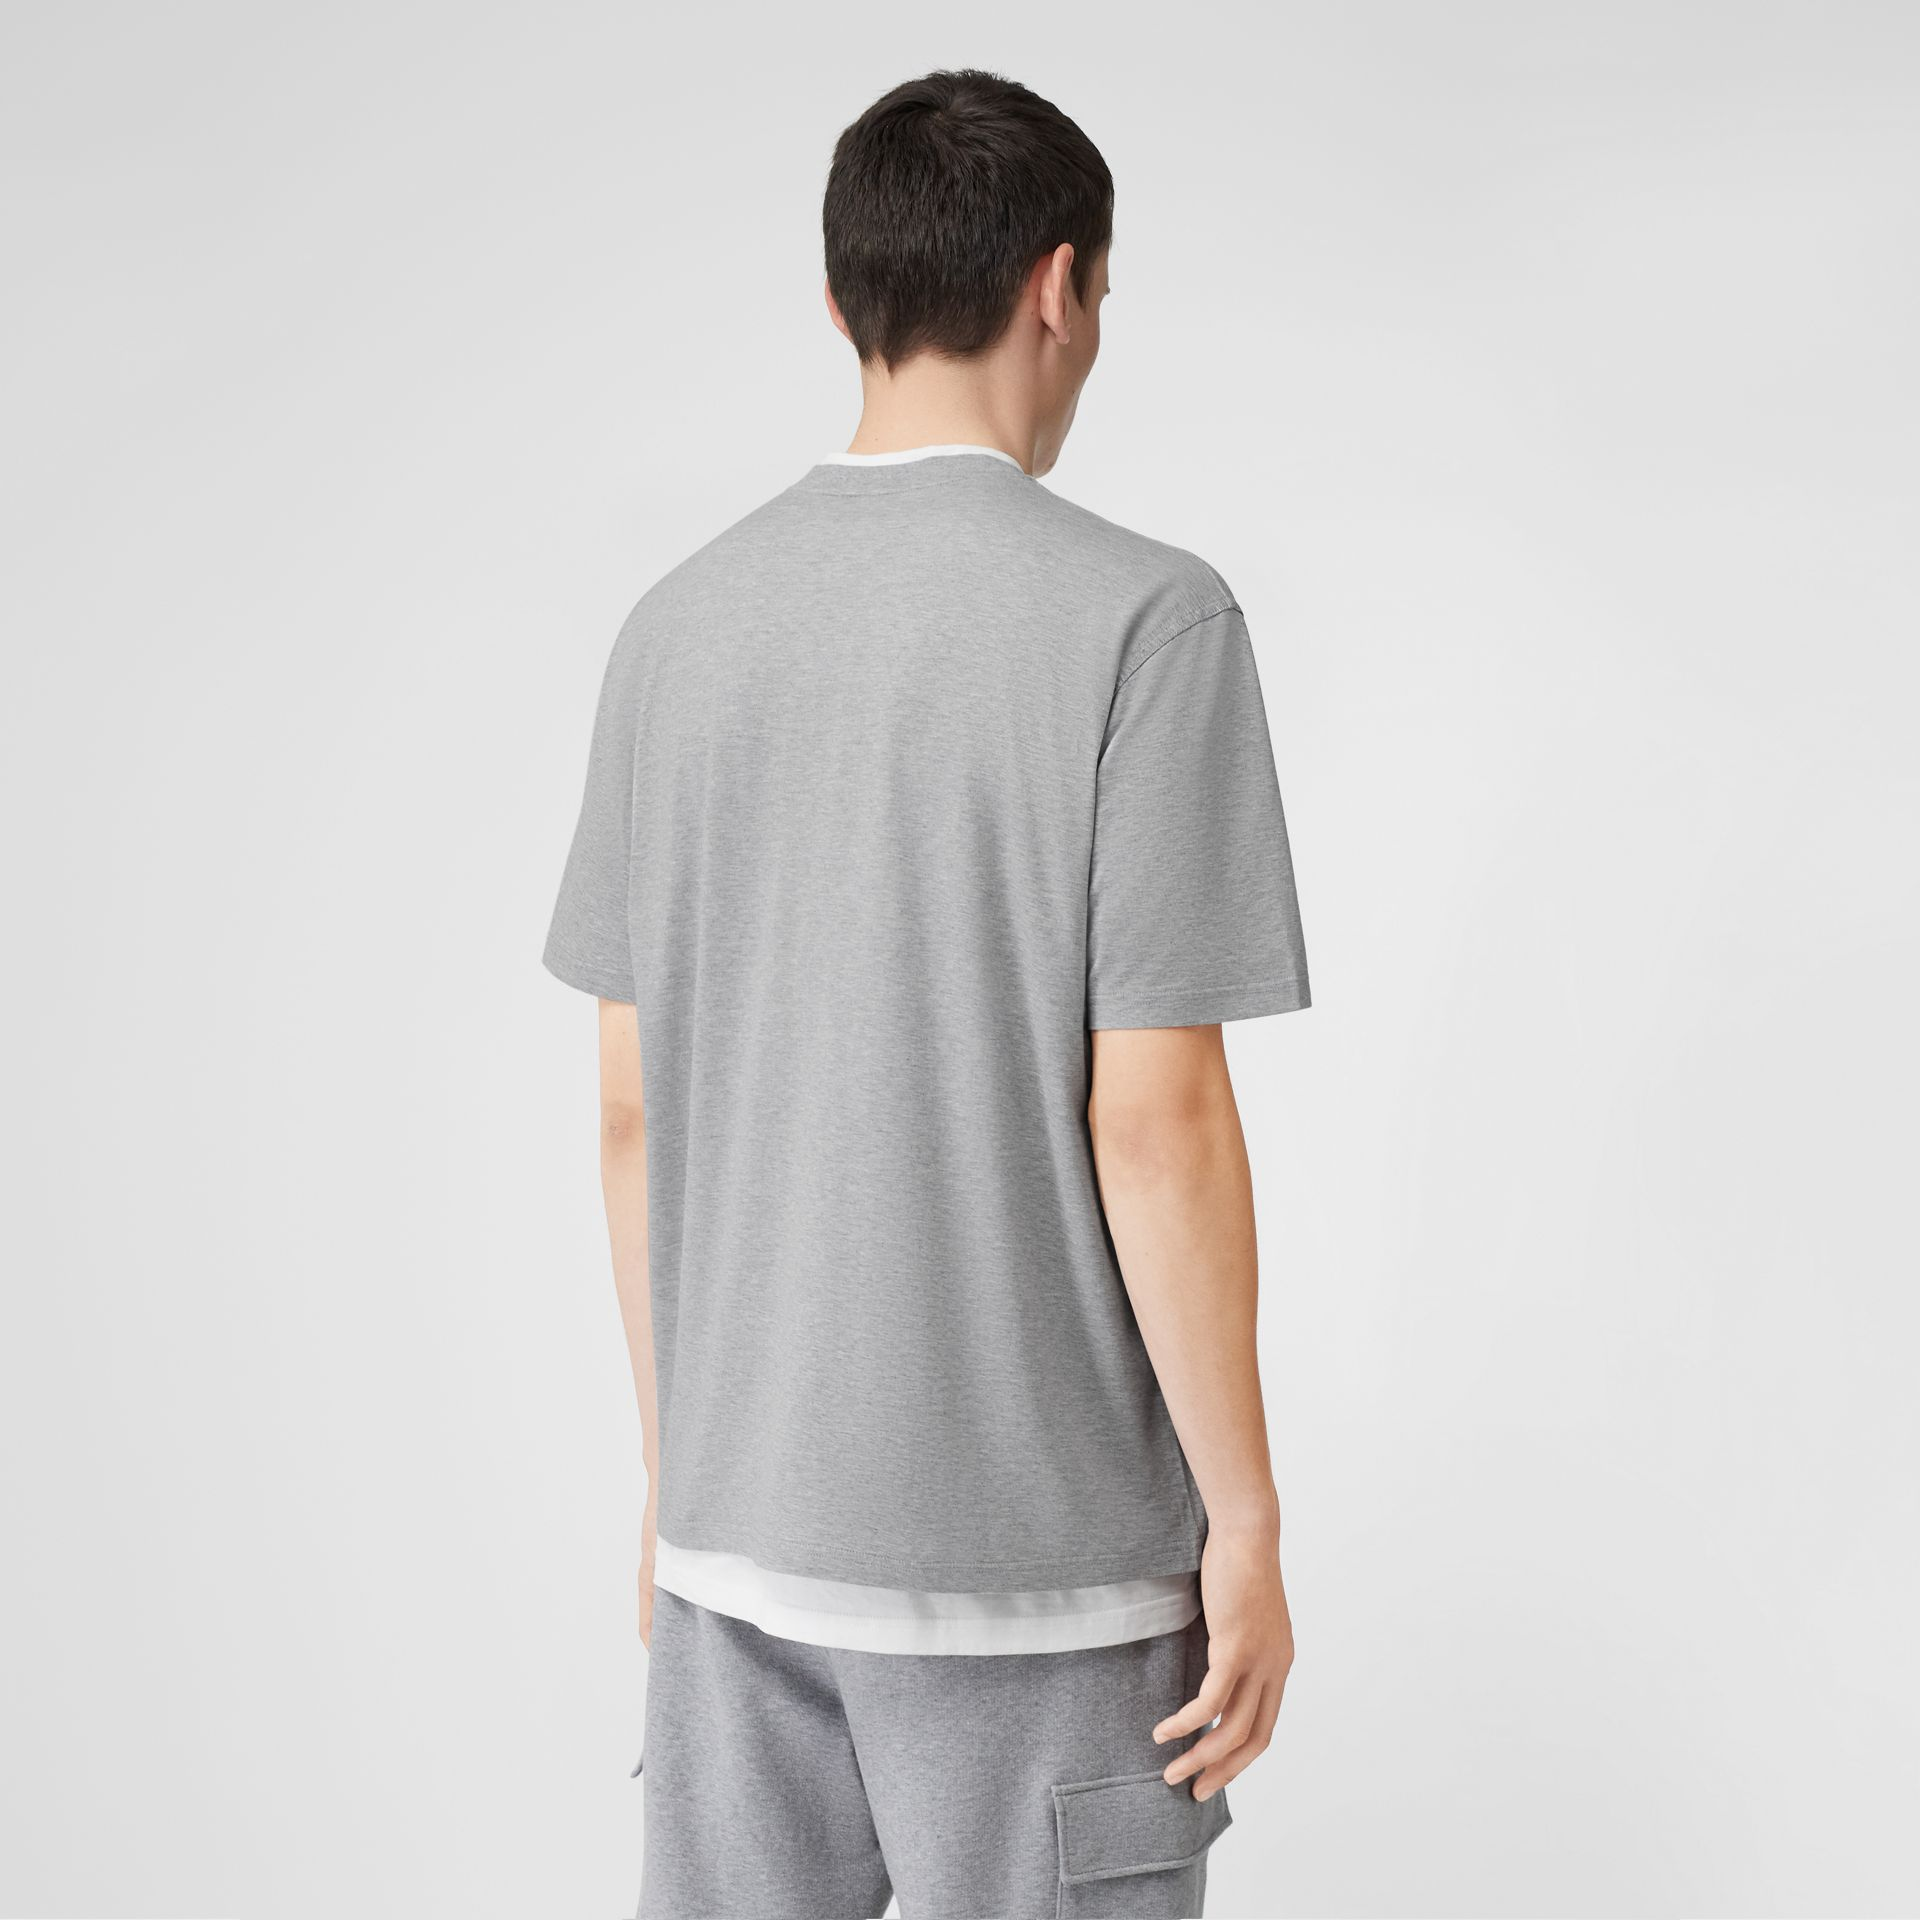 Monogram Motif Cotton Oversized T-shirt in Pale Grey Melange - Men | Burberry Singapore - gallery image 2